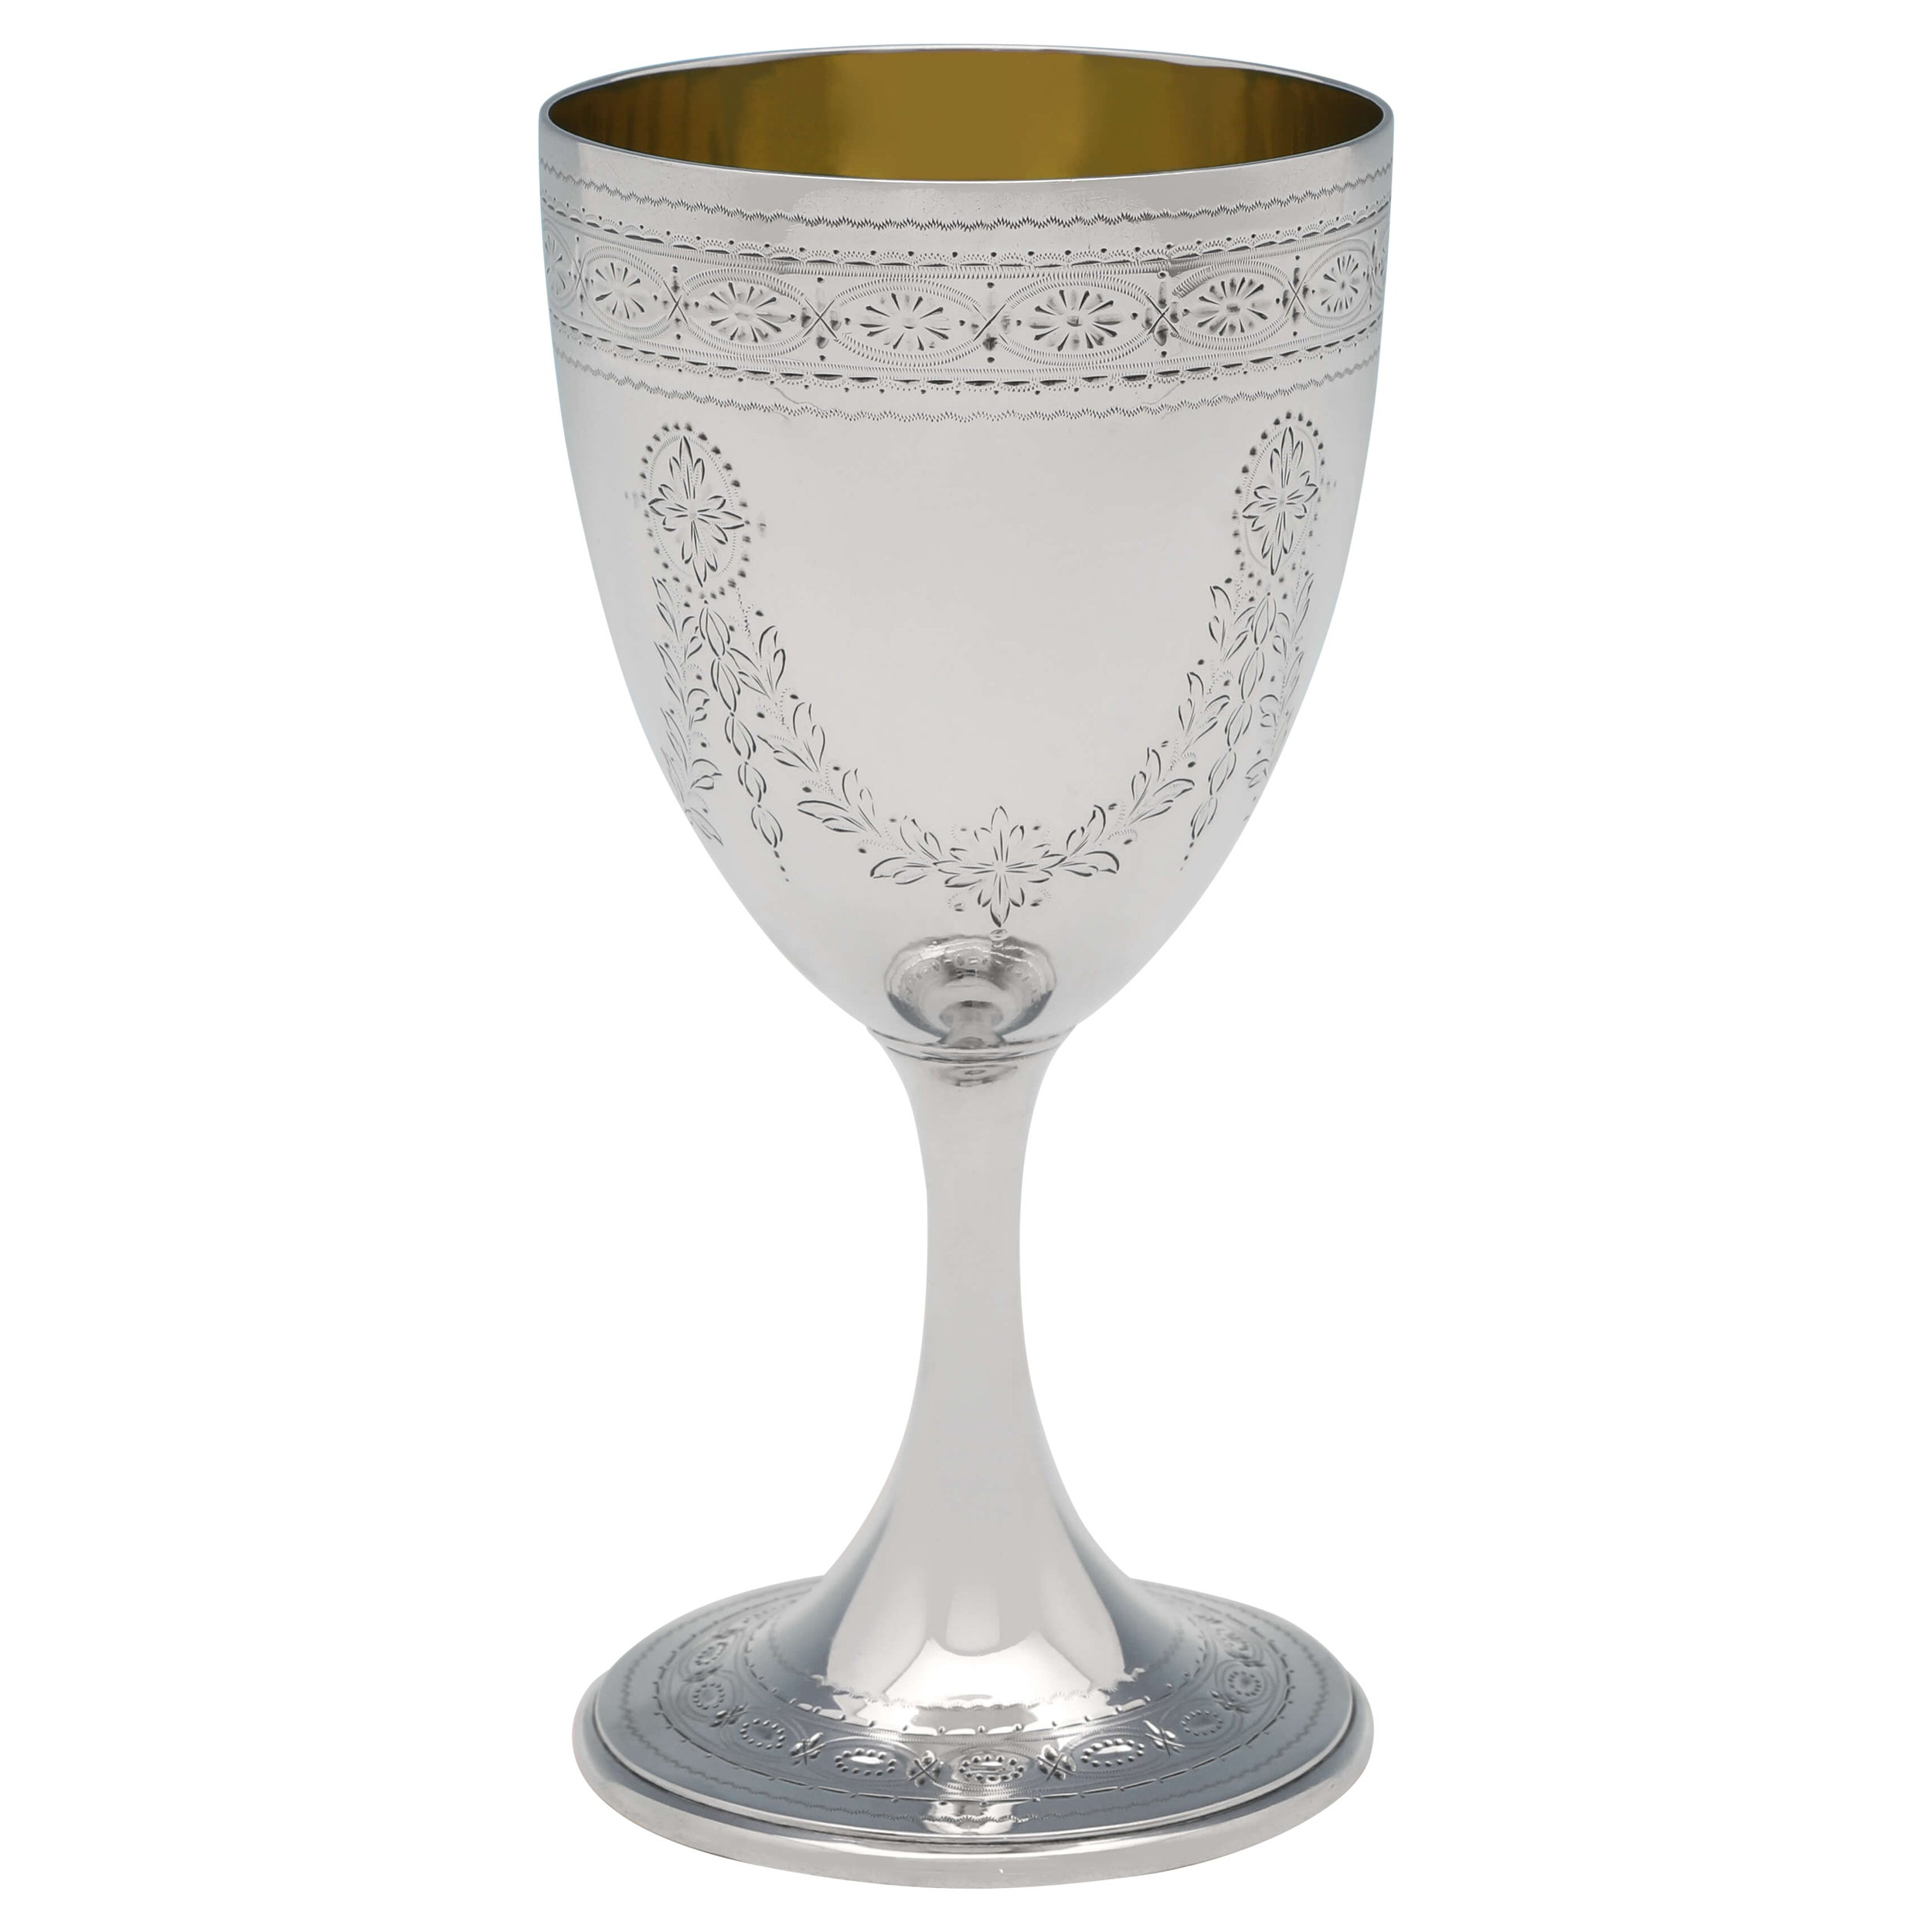 Barnards Victorian Engraved Sterling Silver Goblet, Gilt Interior, 1872